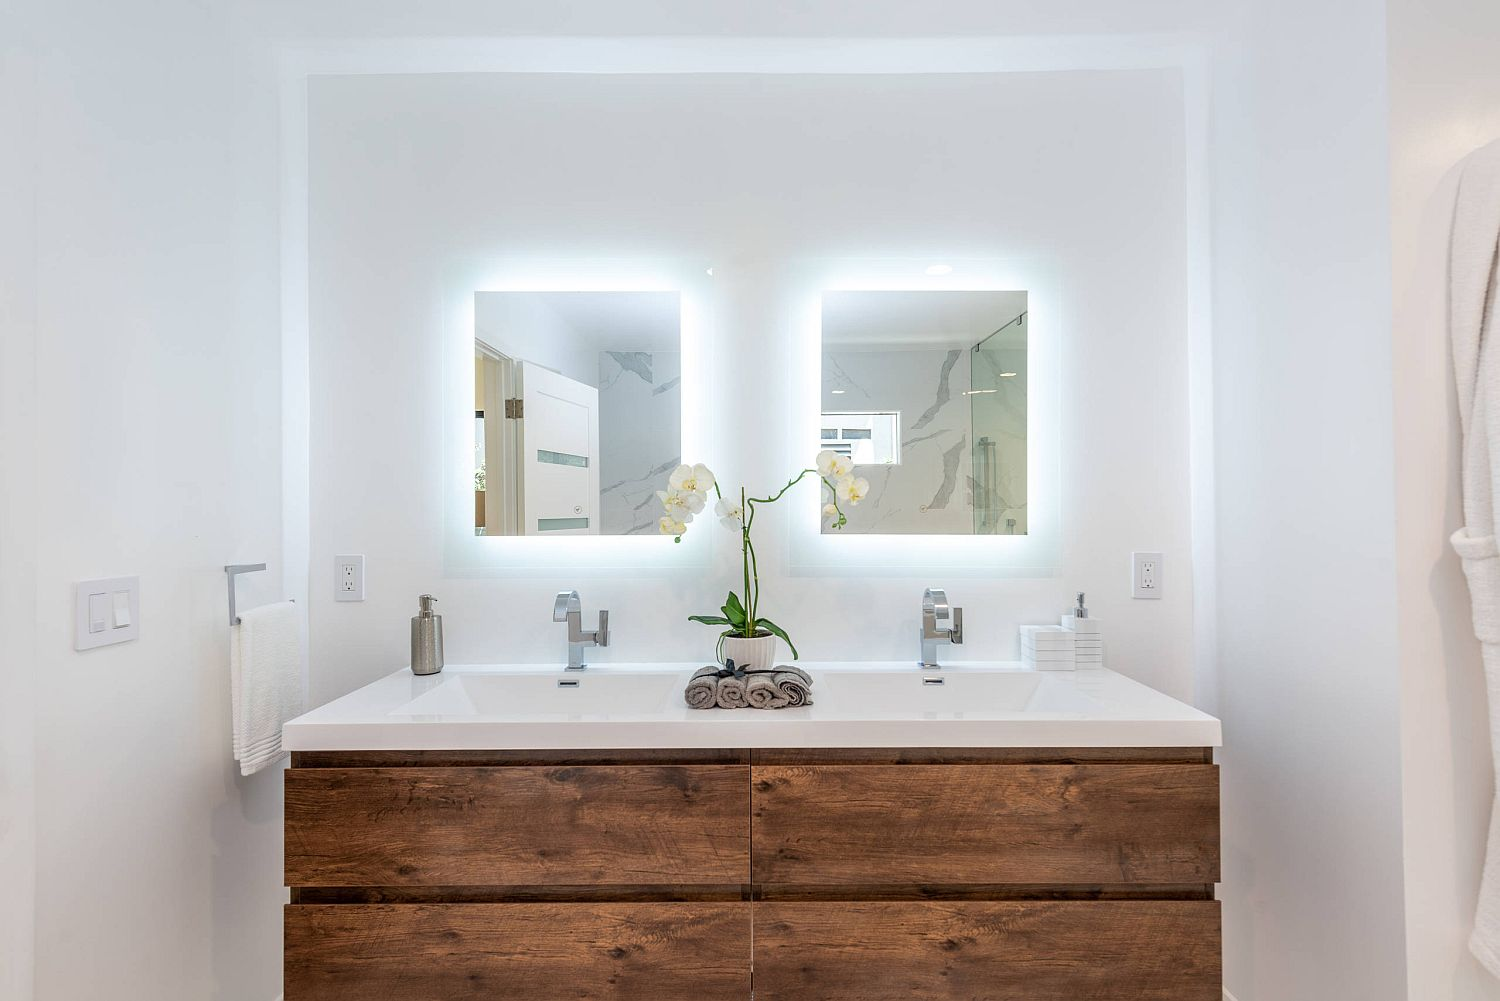 Small wood and white bathroom with a breezy double vanity and lovely lighting that gives it a radiant look